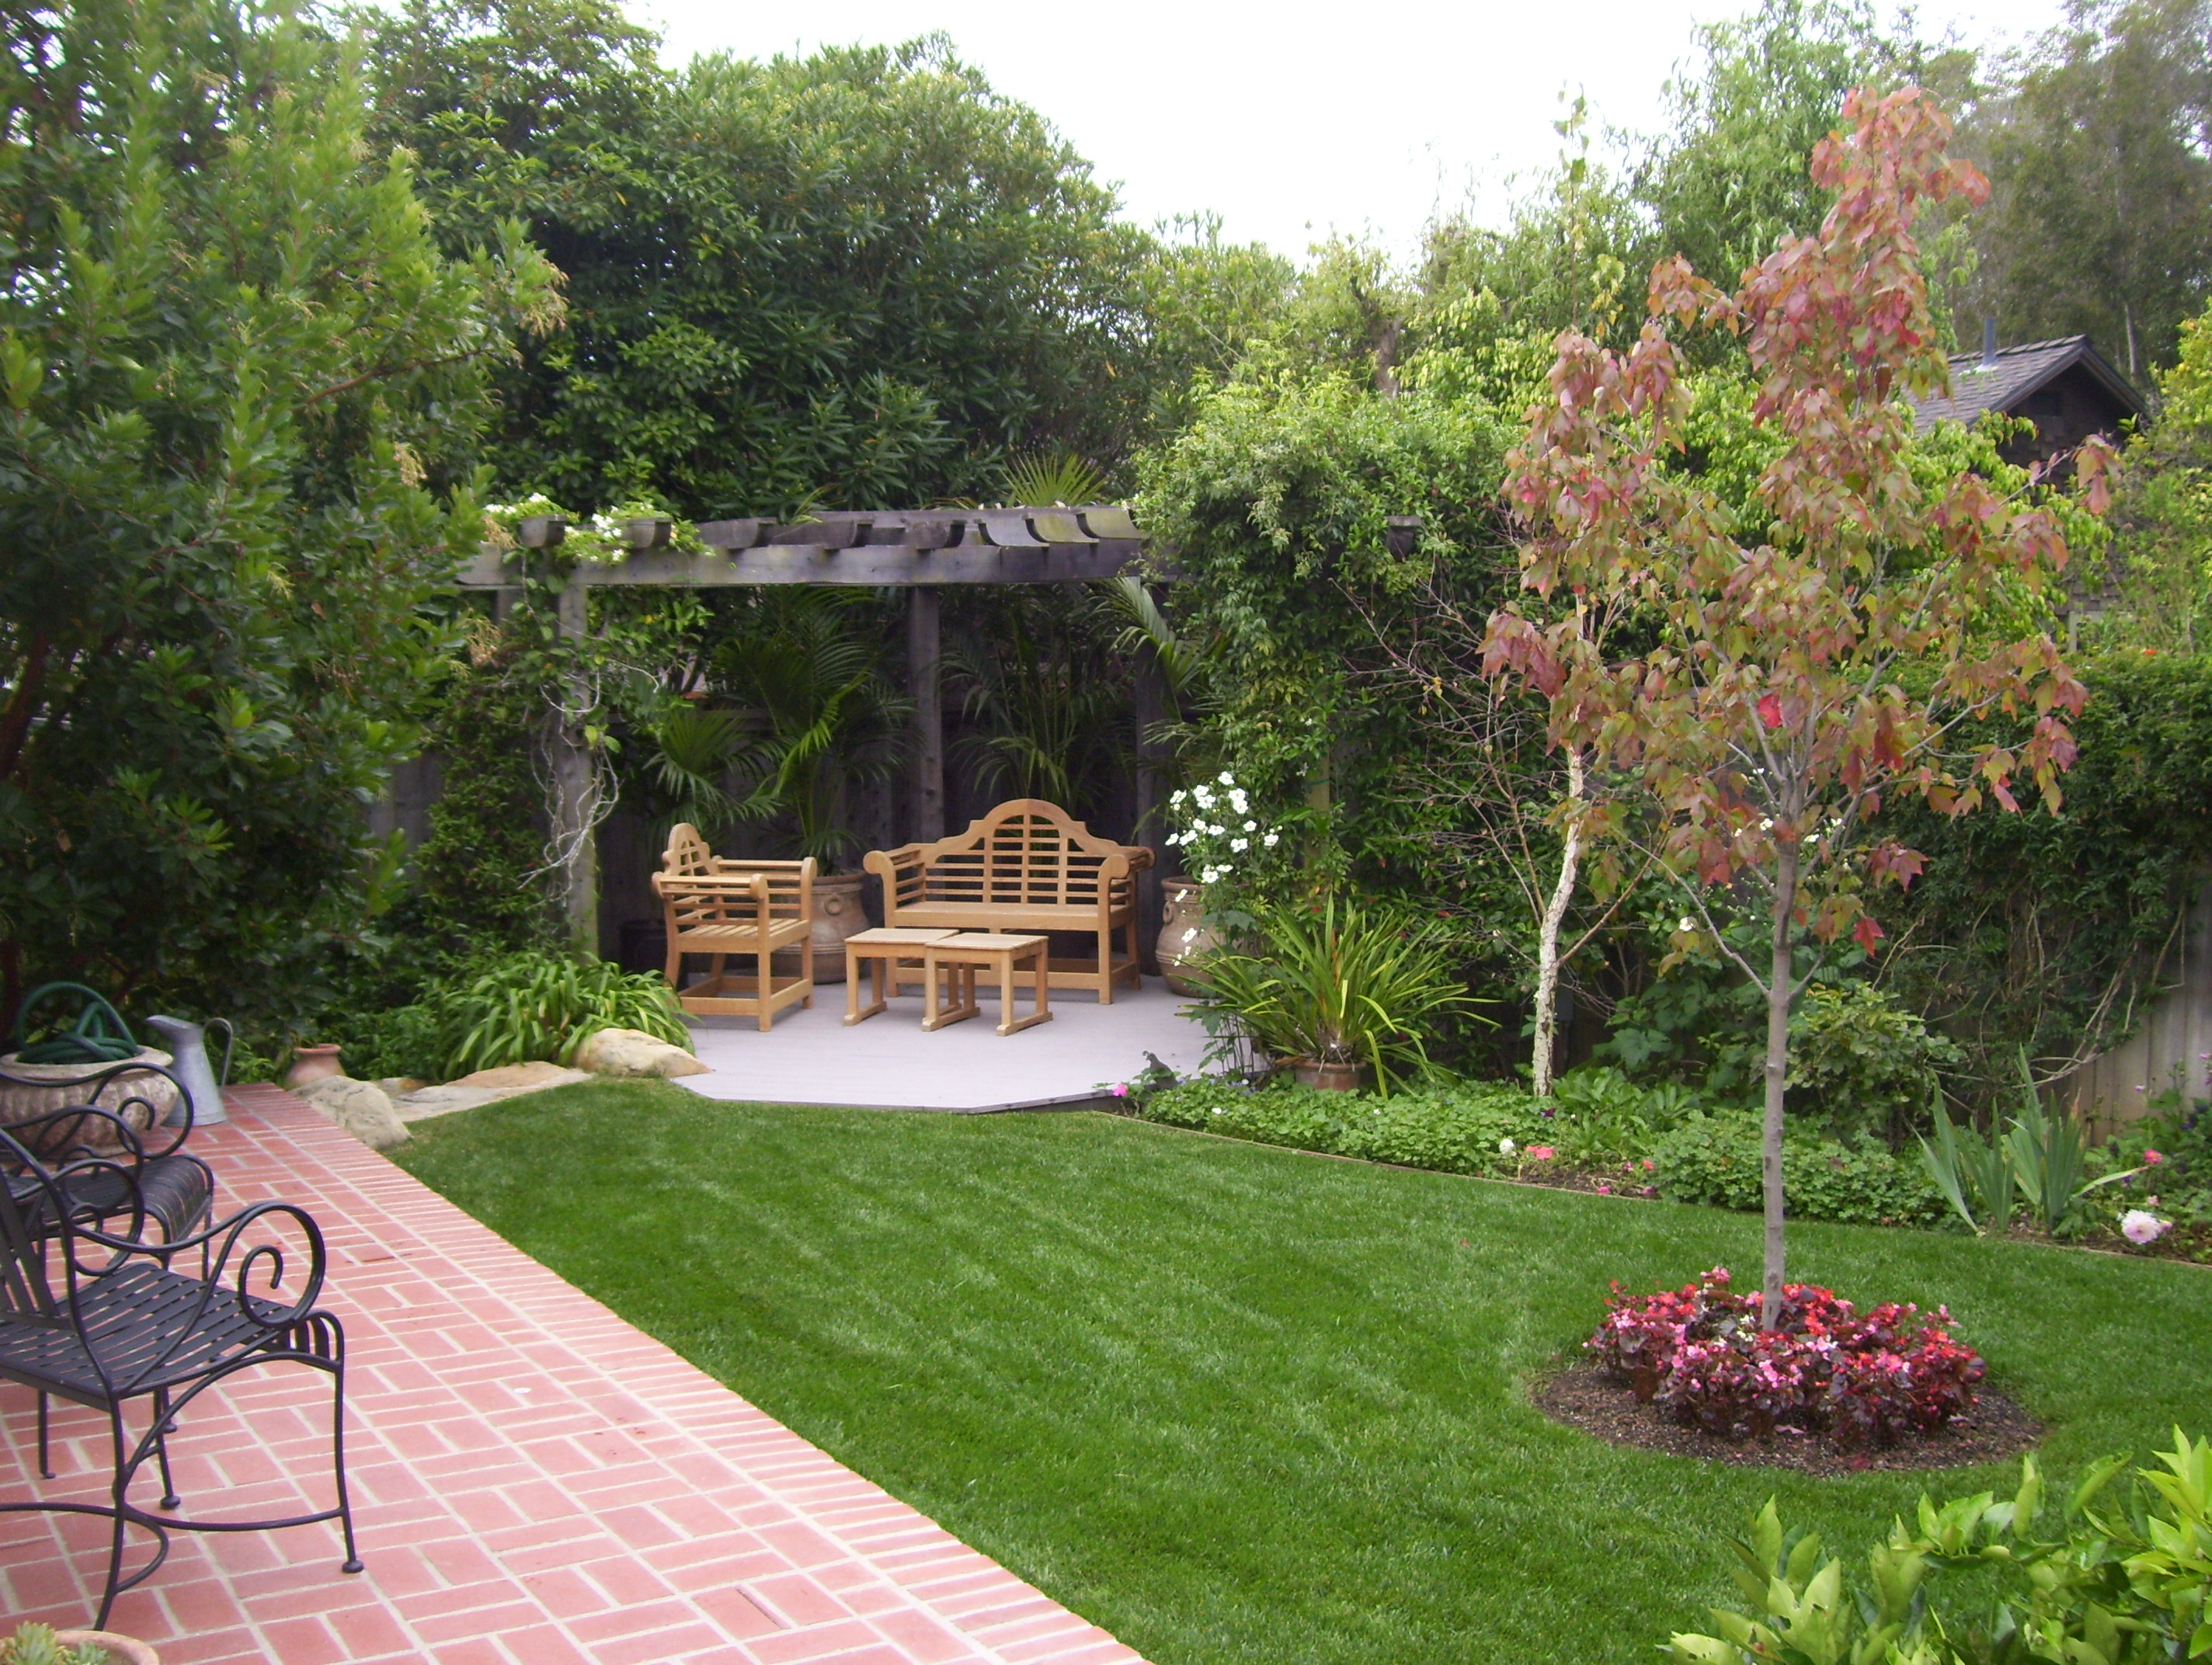 Building Permits For Landscaping Santa Barbara Landscaping Company with Backyard Landscaping Company